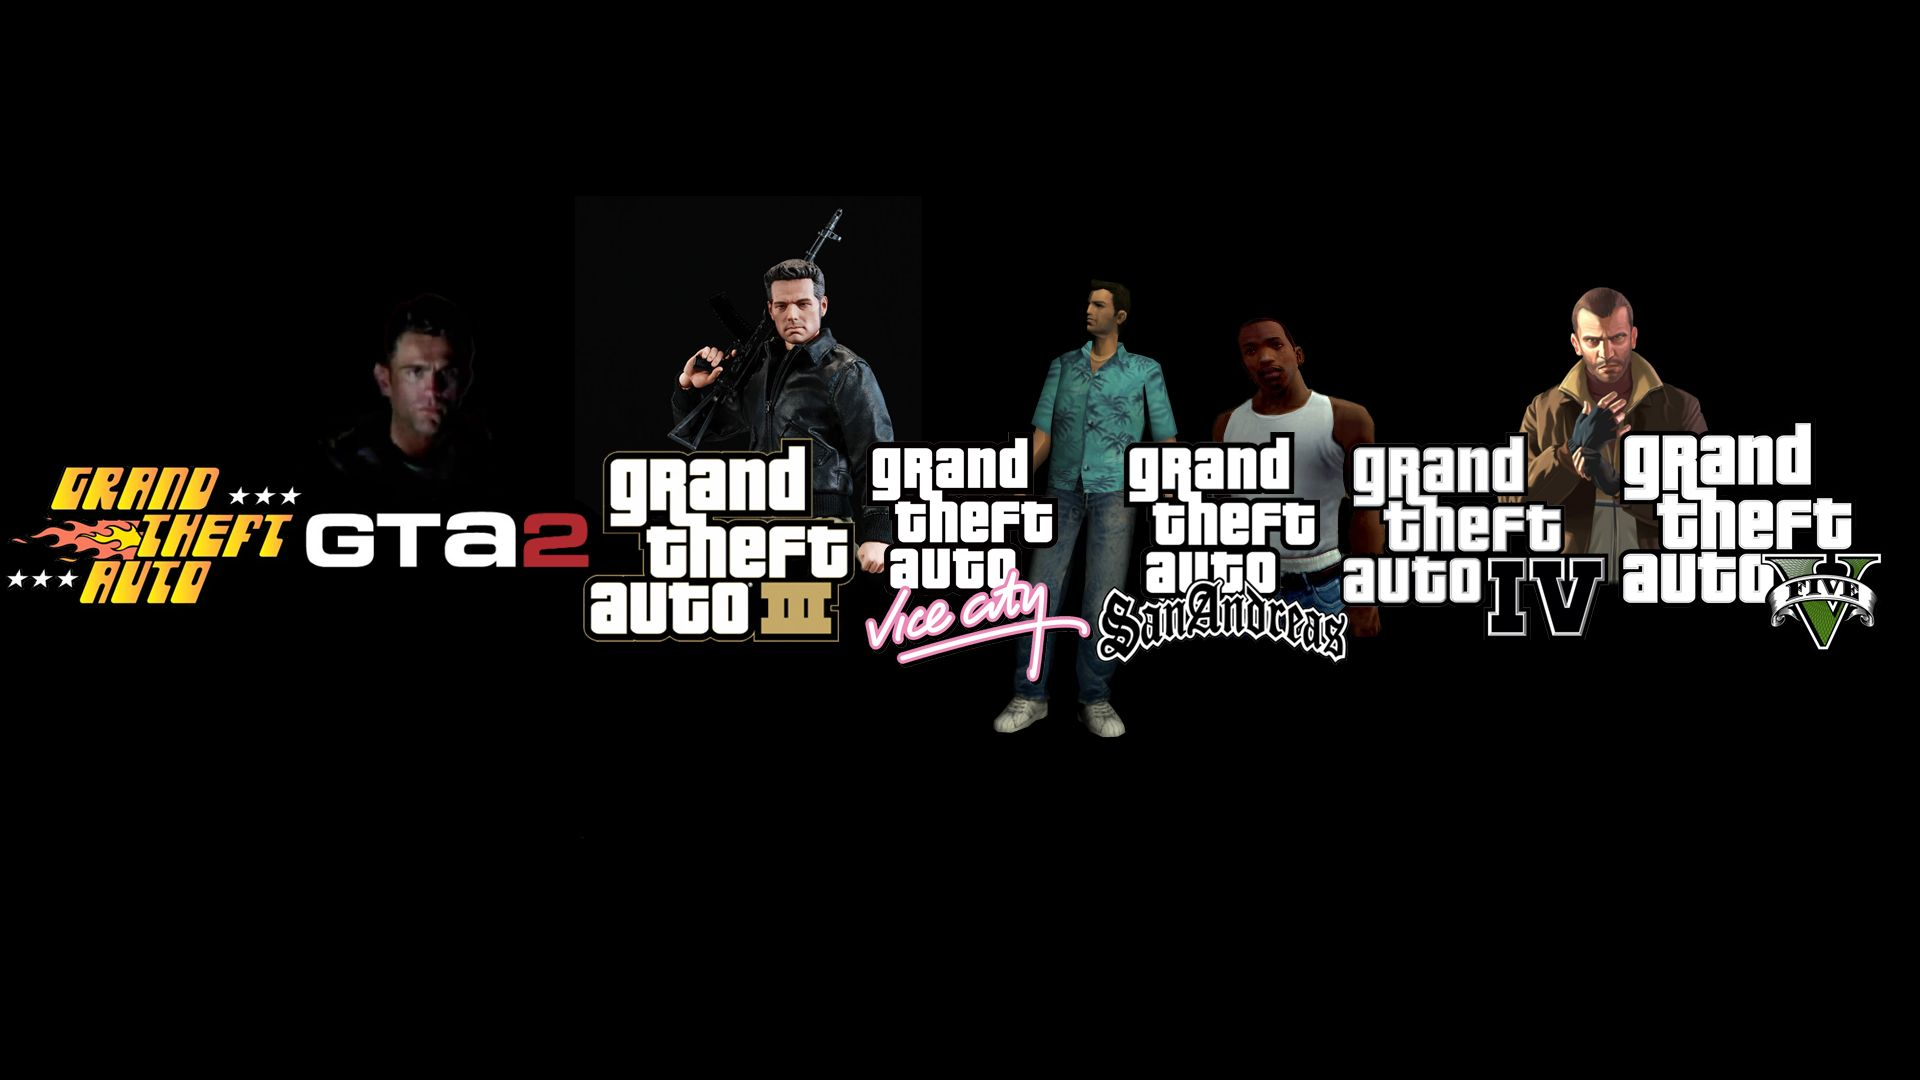 Free Download Gta 5 Hd Wide Wallpapers For Your Desktop